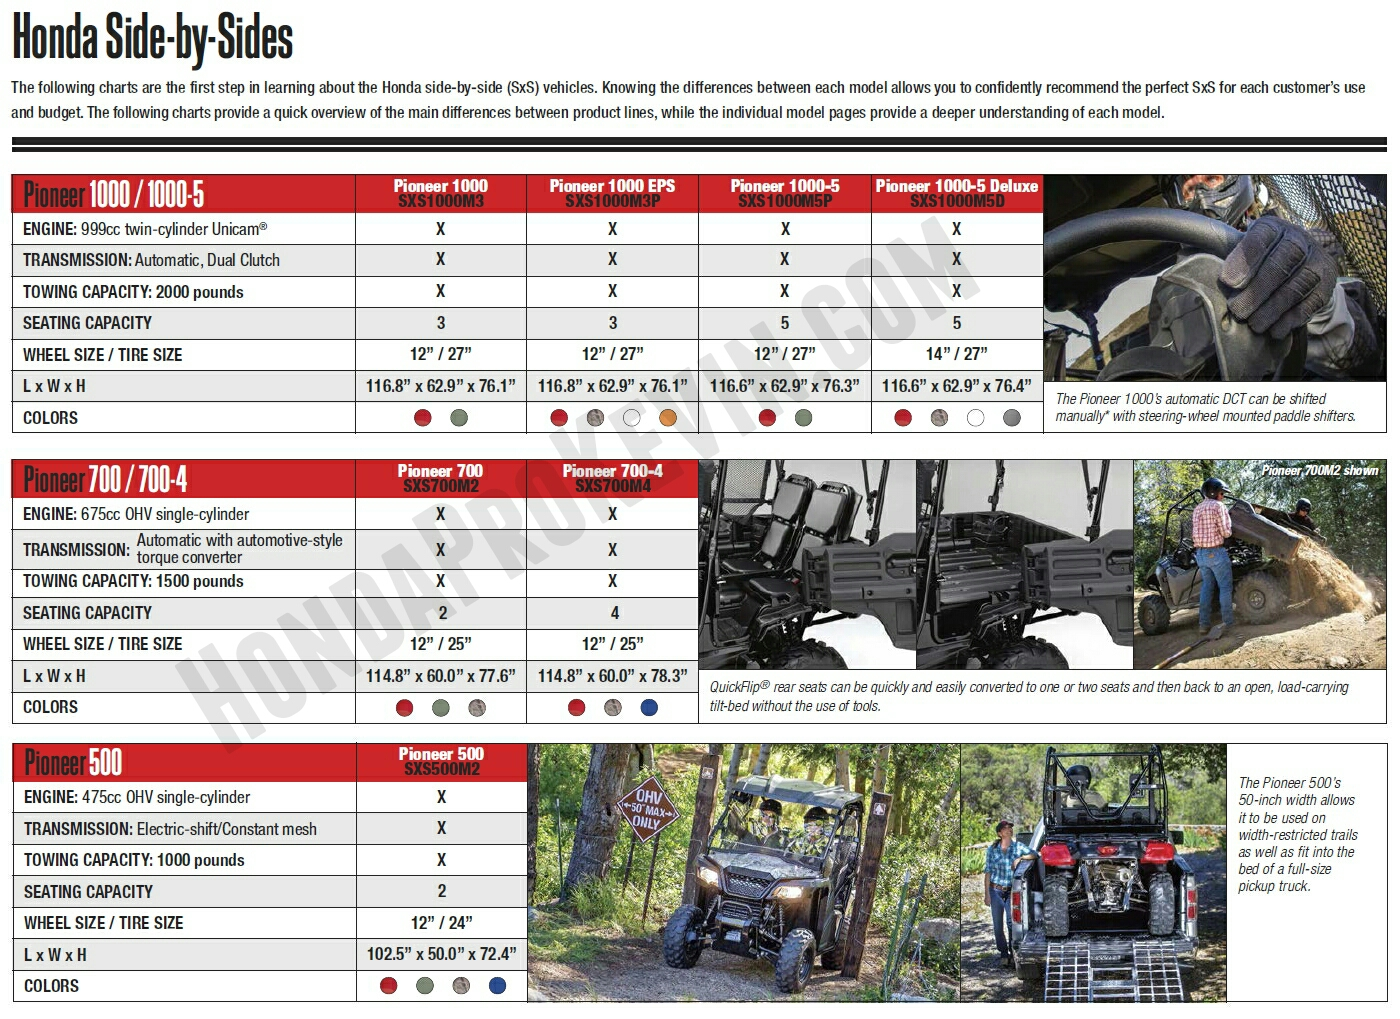 Honda Side by Side ATV / UTV Model Lineup Review of Specs / Prices / Features + More!